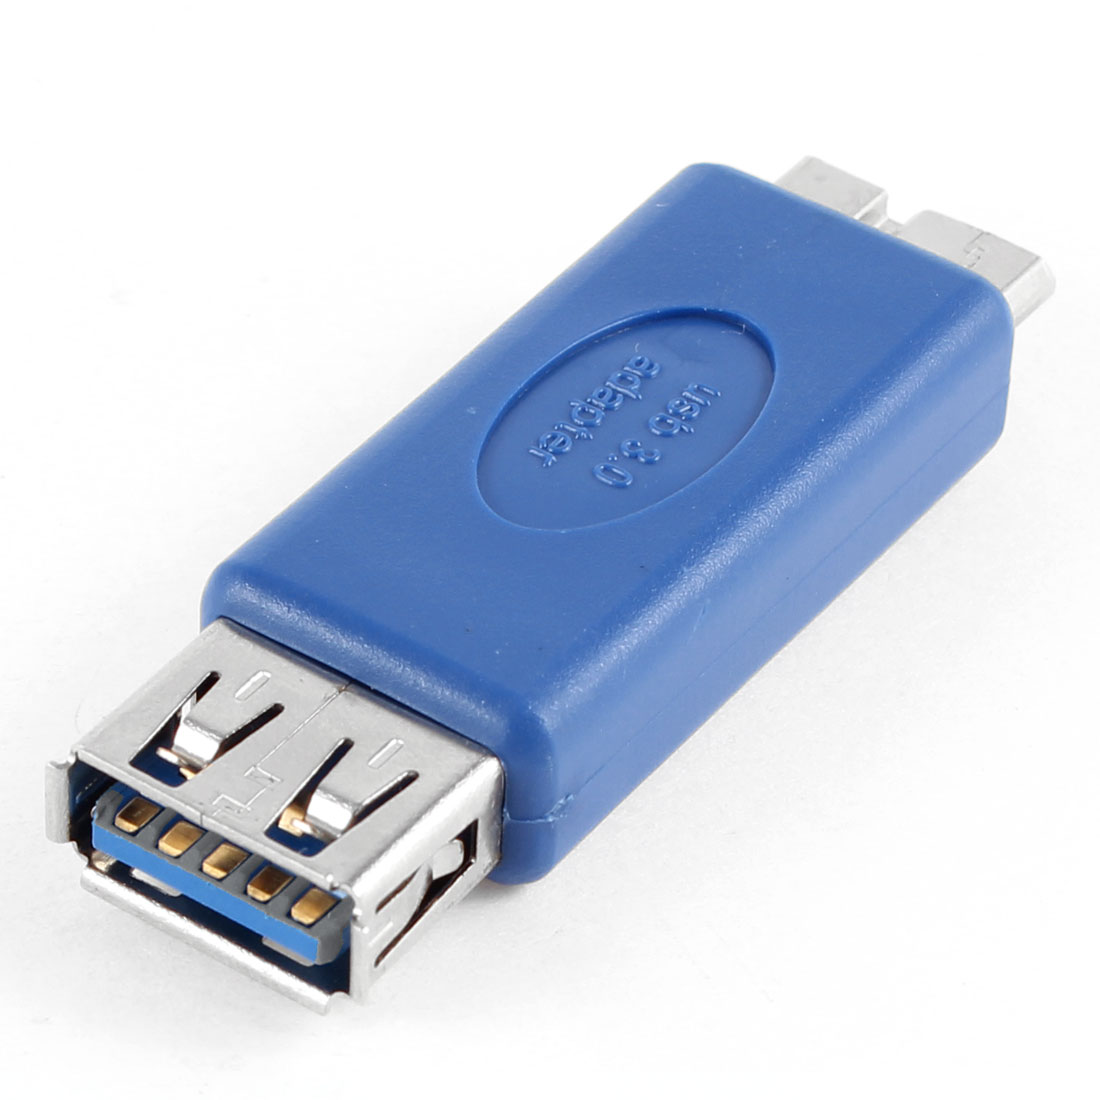 USB 3.0 Type A Female to Micro B Male Straight Adapter Connector Blue